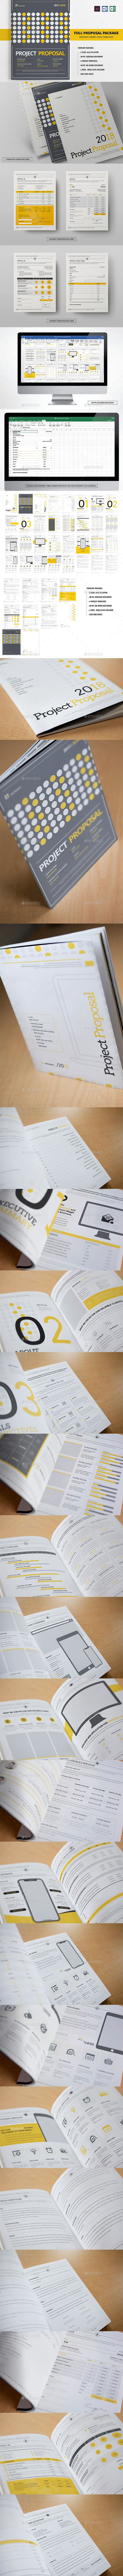 +40 Pages Full #Proposal Packages A4 / US Letter - Proposals & #Invoices #Stationery